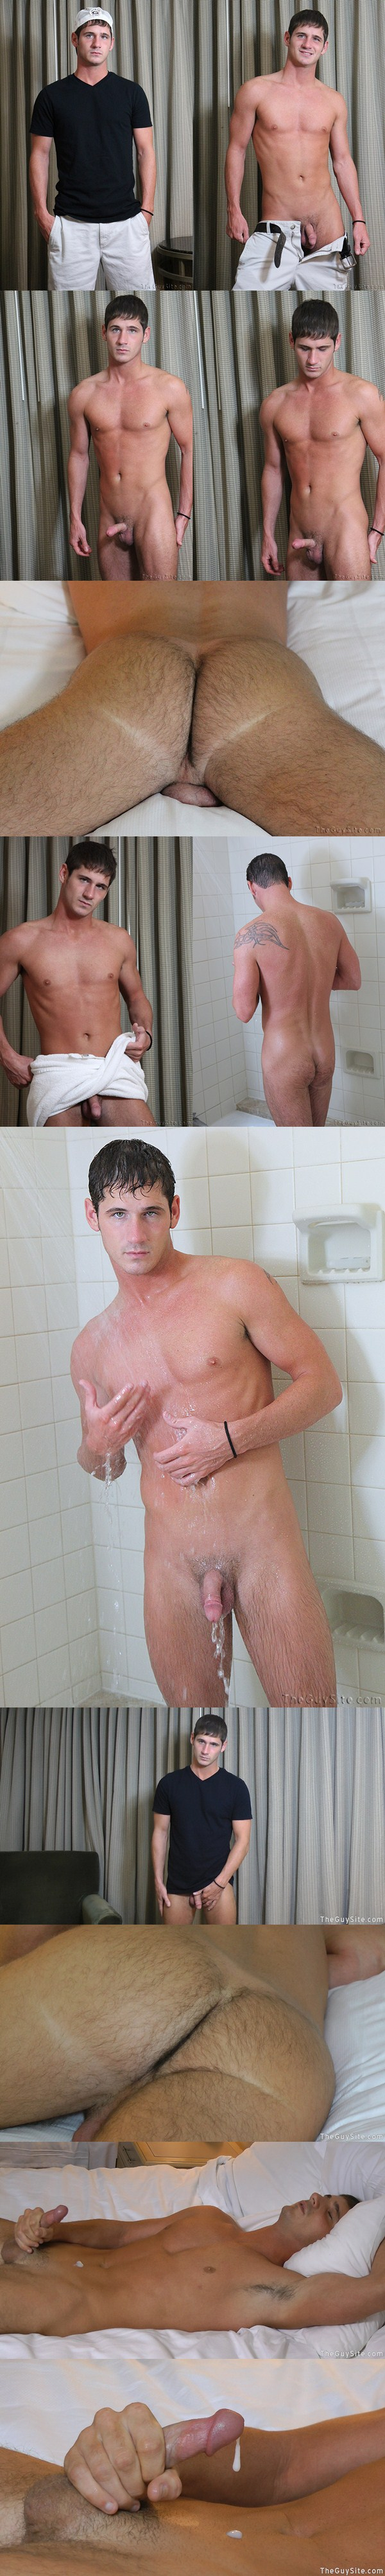 Hot green-eyed country boy Channing jerking off solo at Theguysite 01